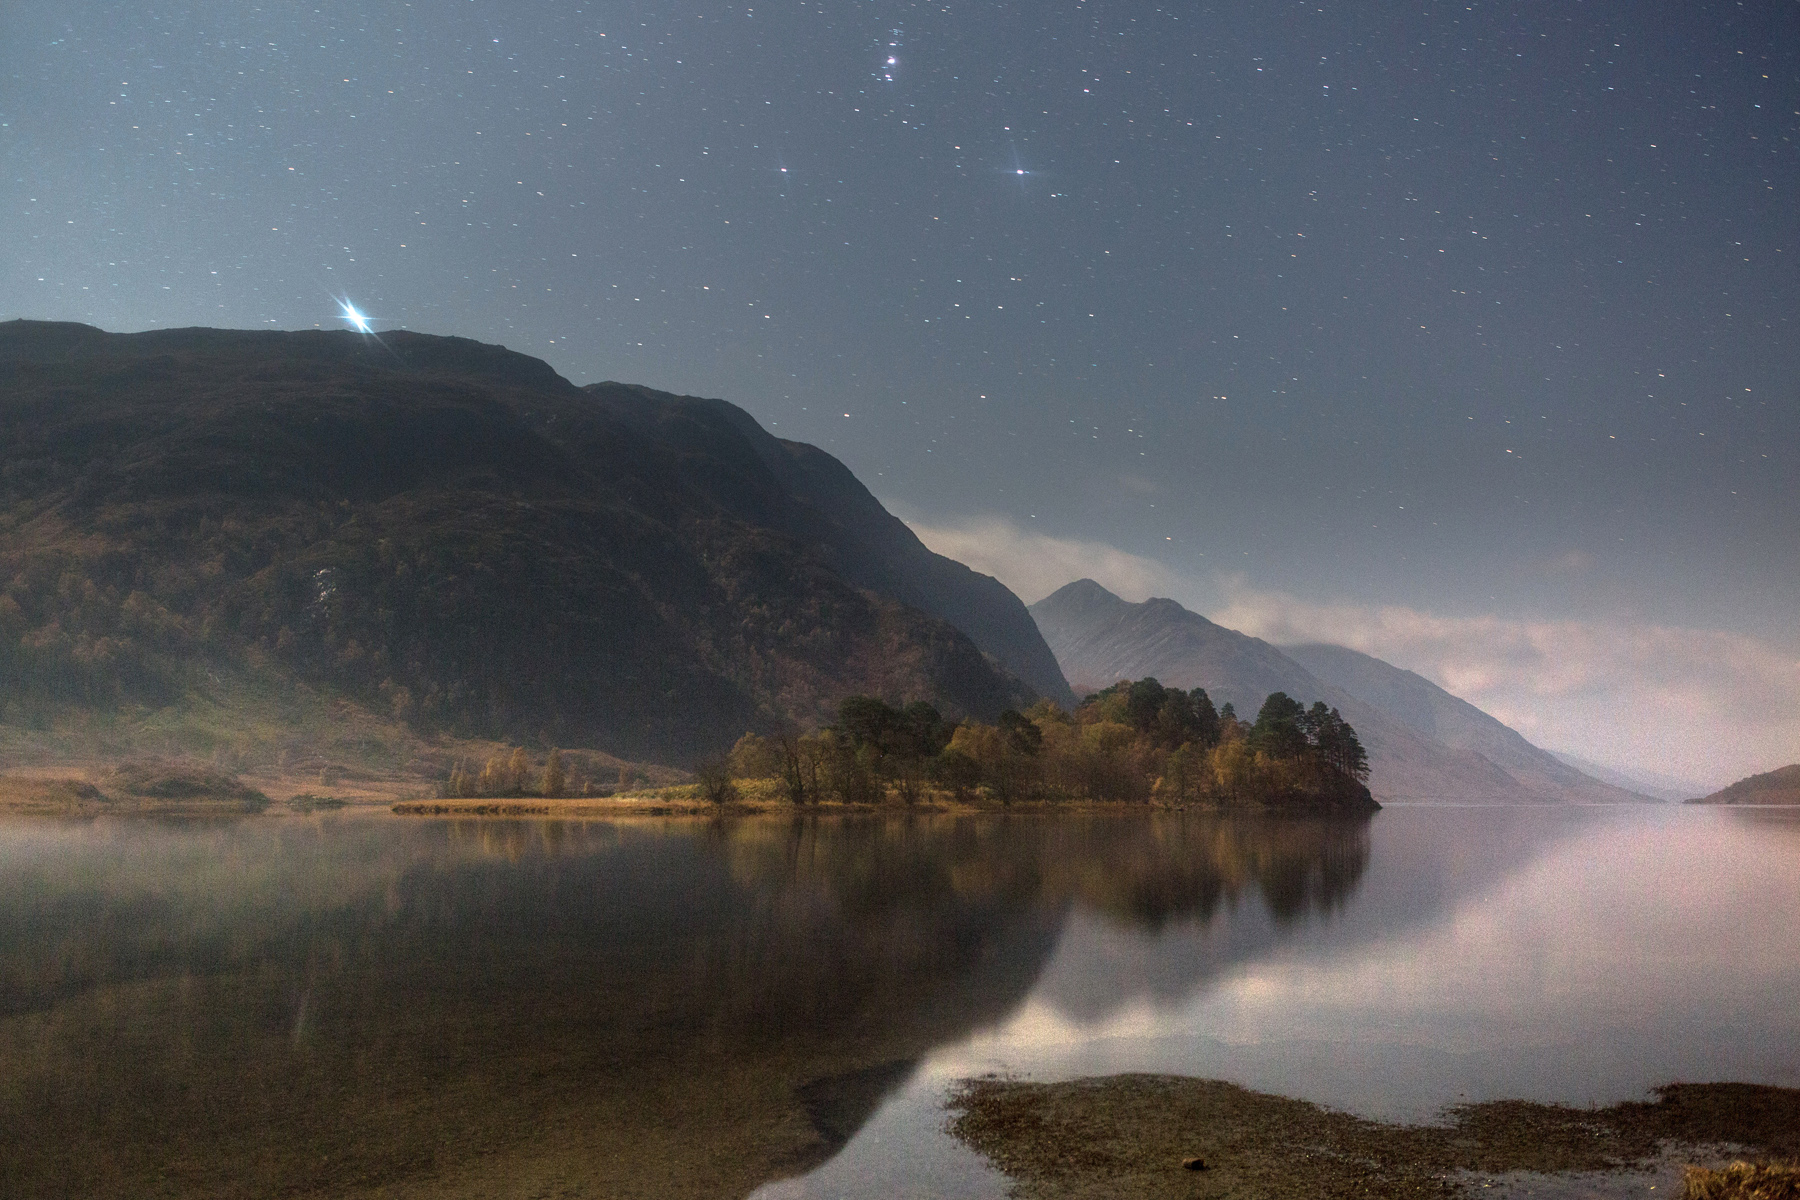 Loch Shiel by starlight by Graeme Gainey